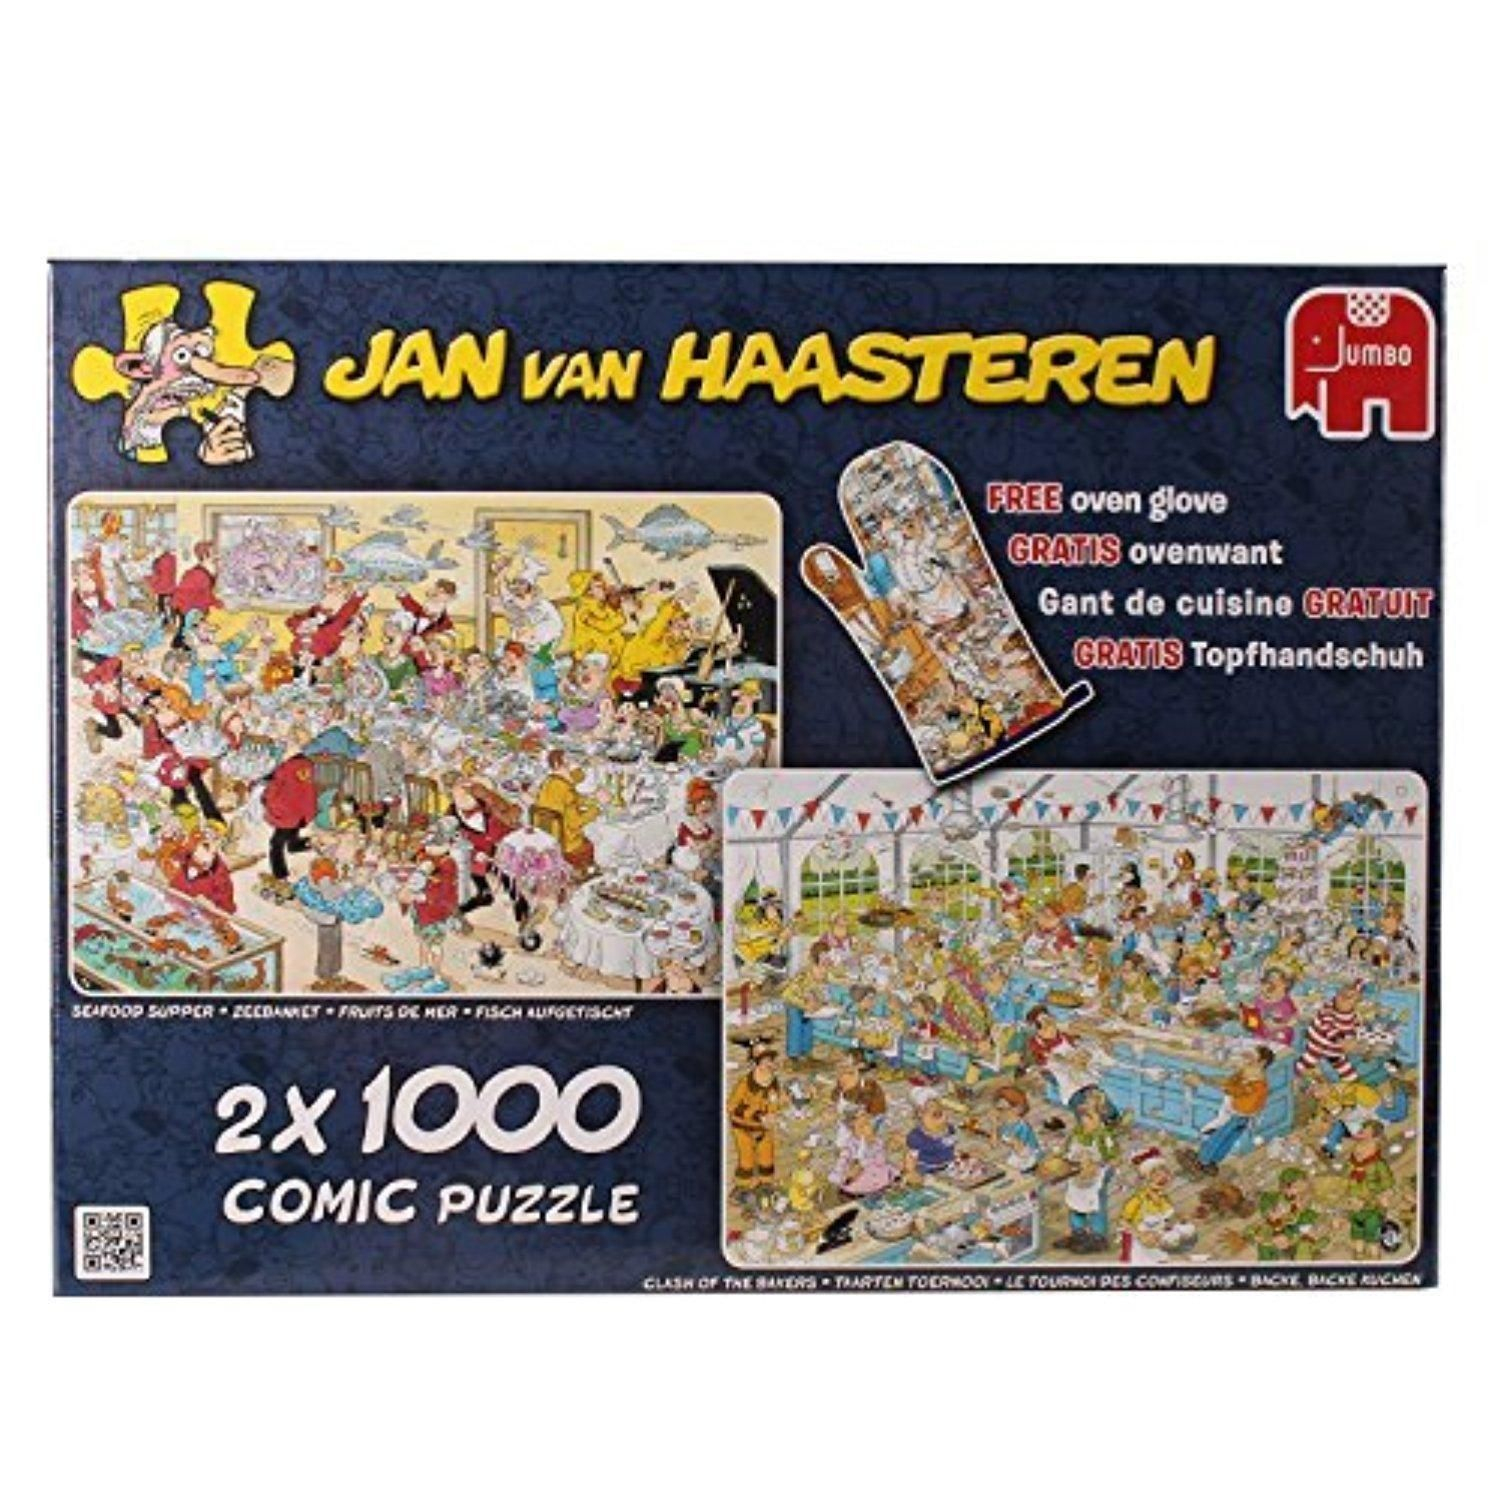 Jan Van Haasteren Special Edition Food Frenzy Jigsaw Puzzle tout Puzzle Photo Gratuit